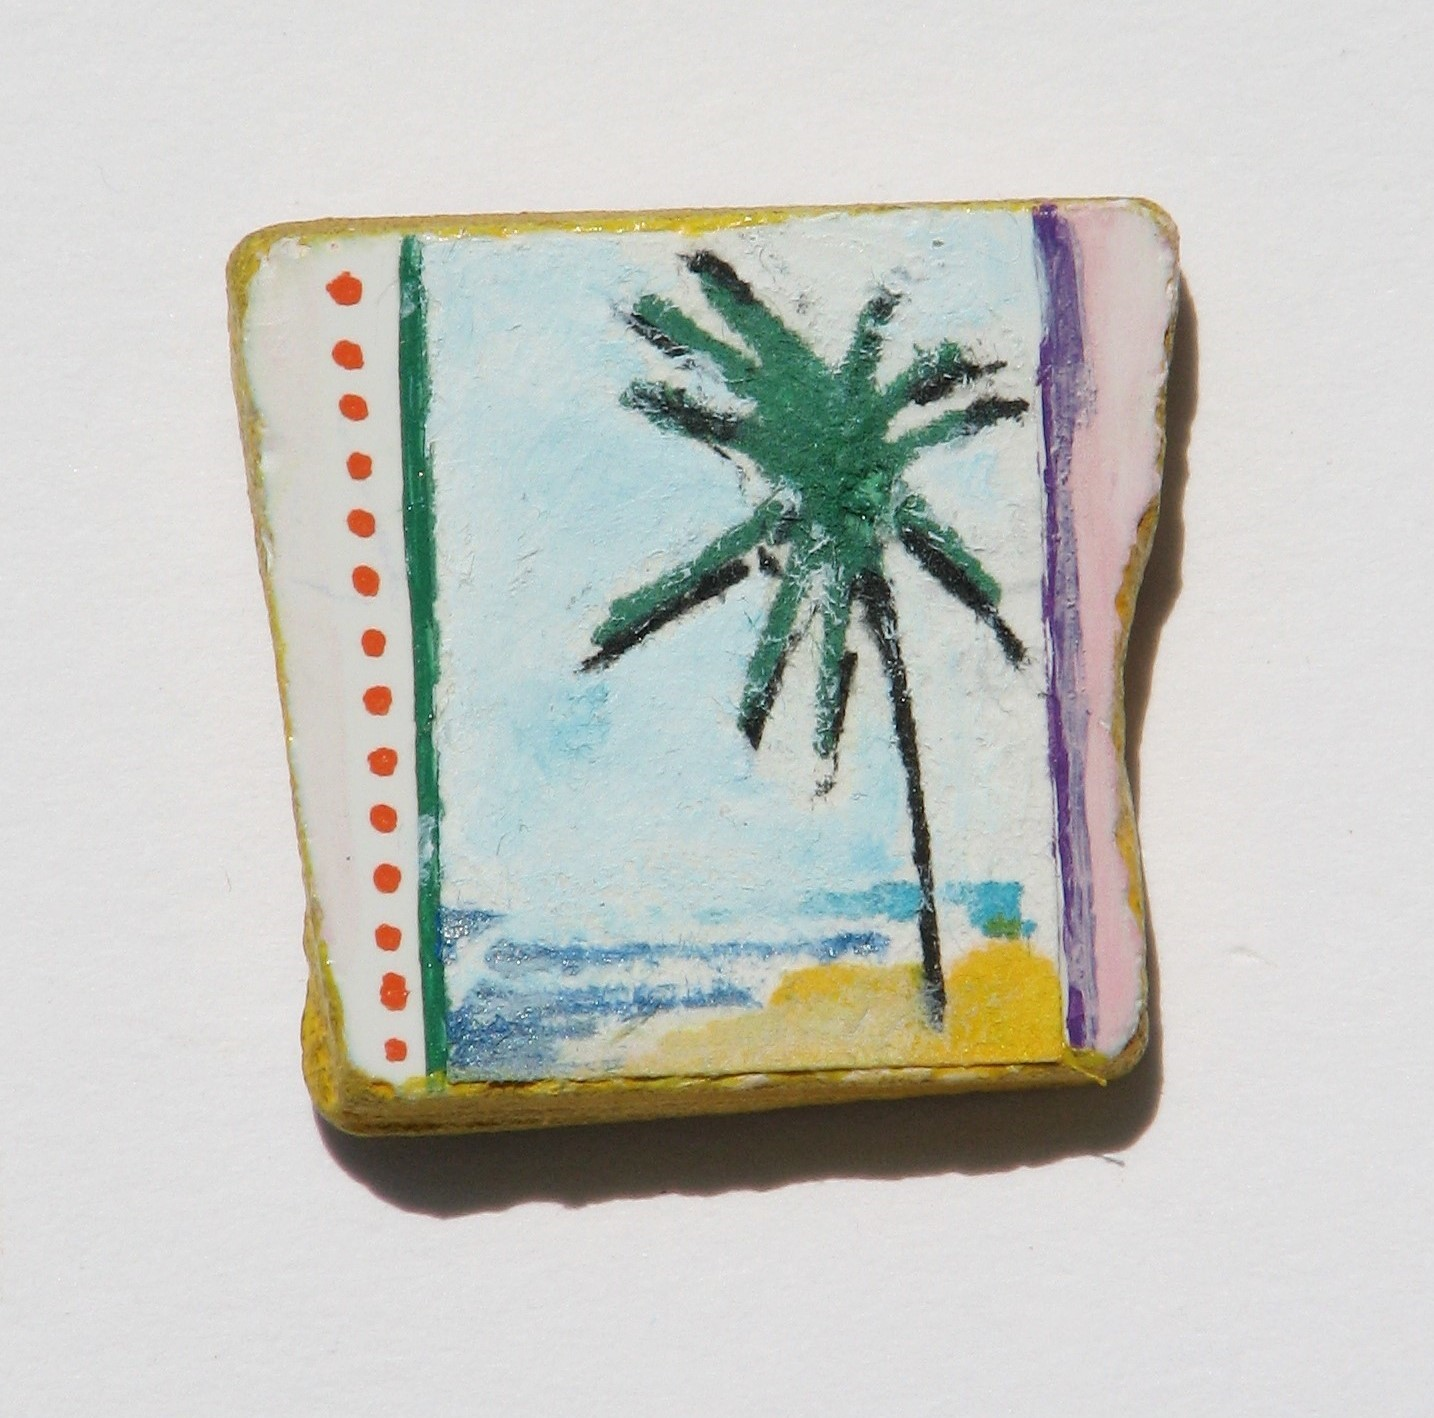 Bora  2014  Paint / Paper on Tile  3,3 x 3,3 cm